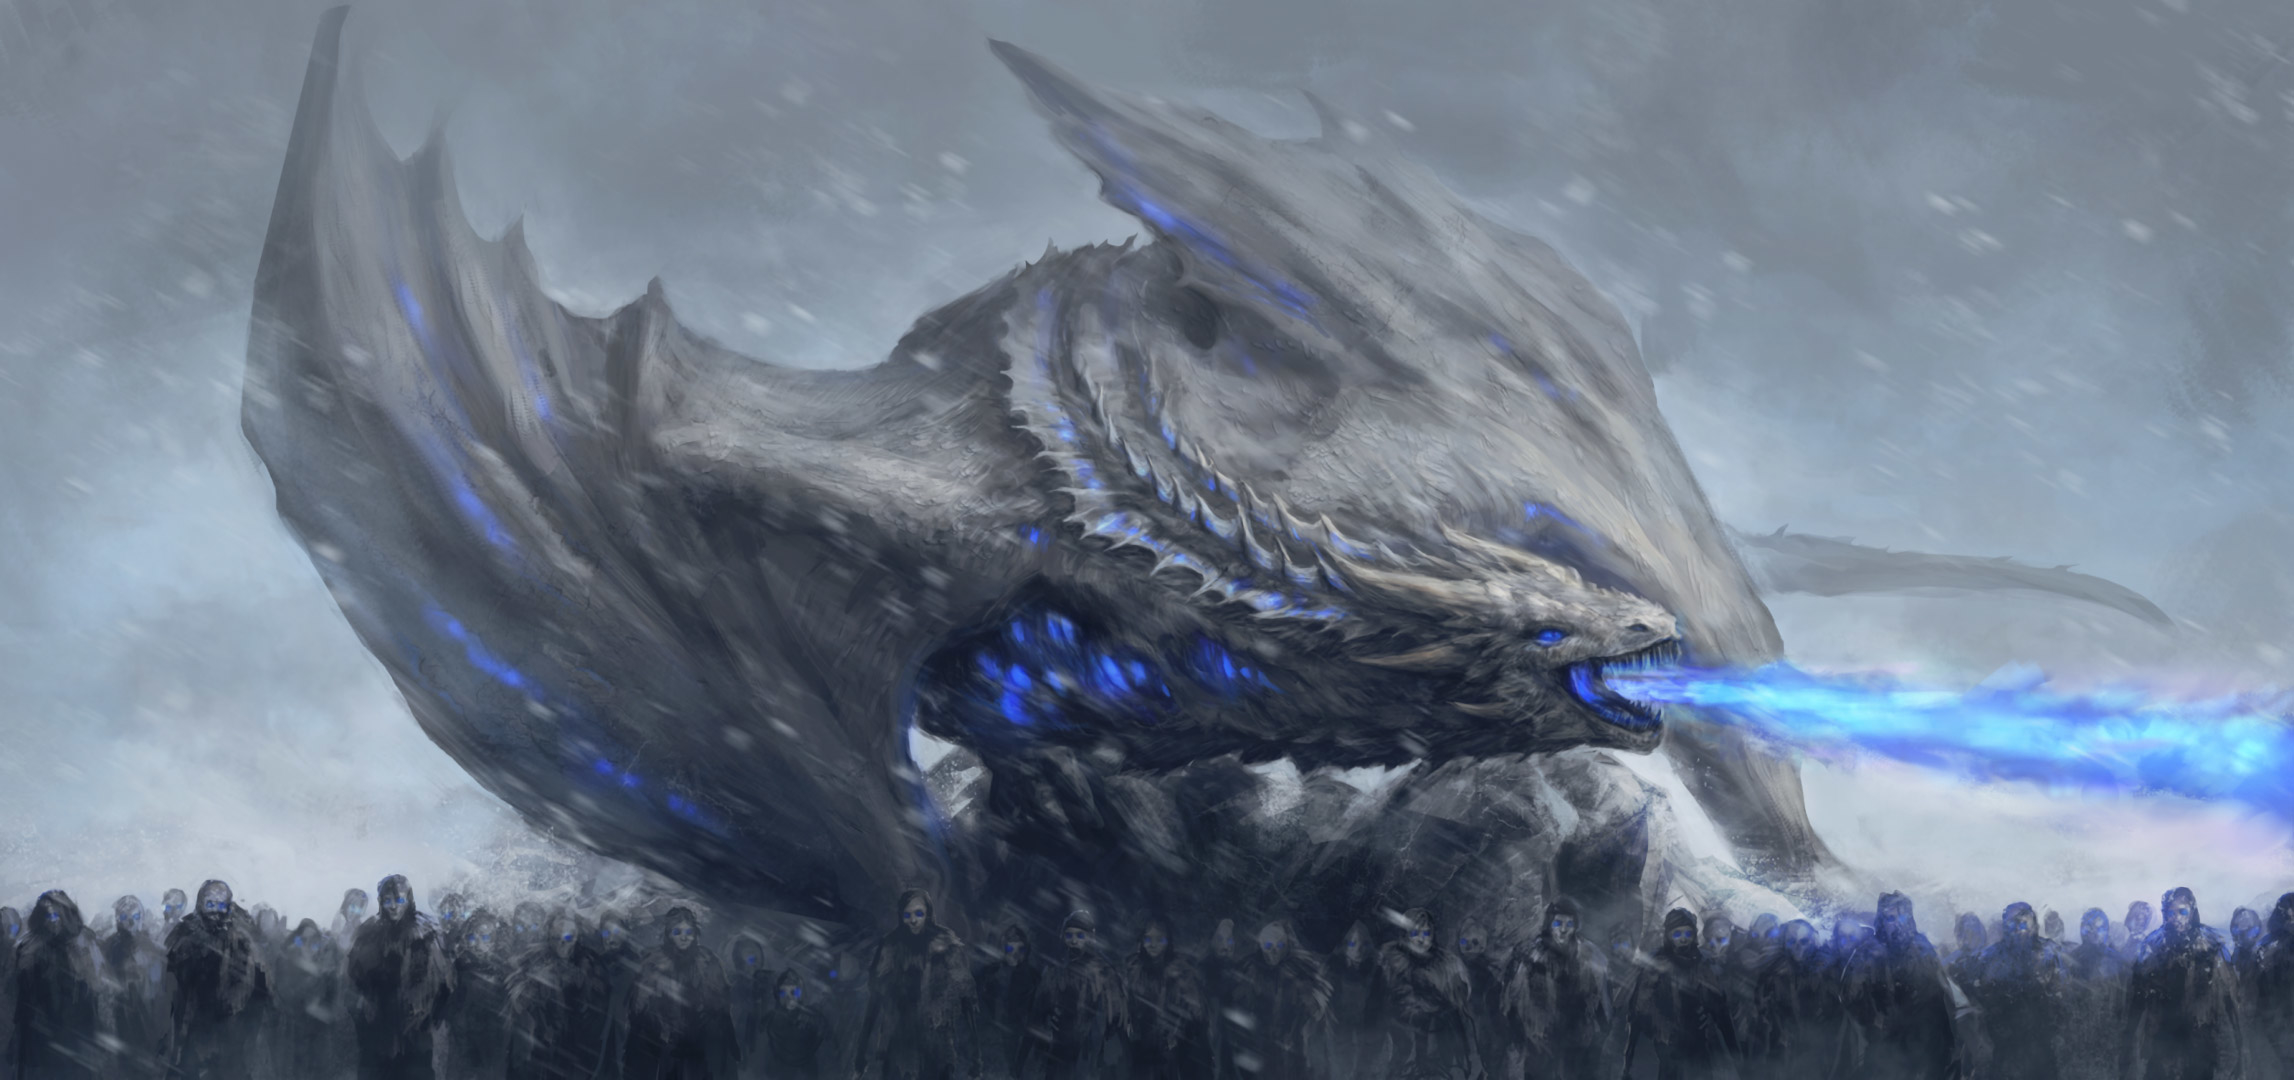 White Walkers Dragon Game Of Thrones Wallpaper Hd Movies 4k